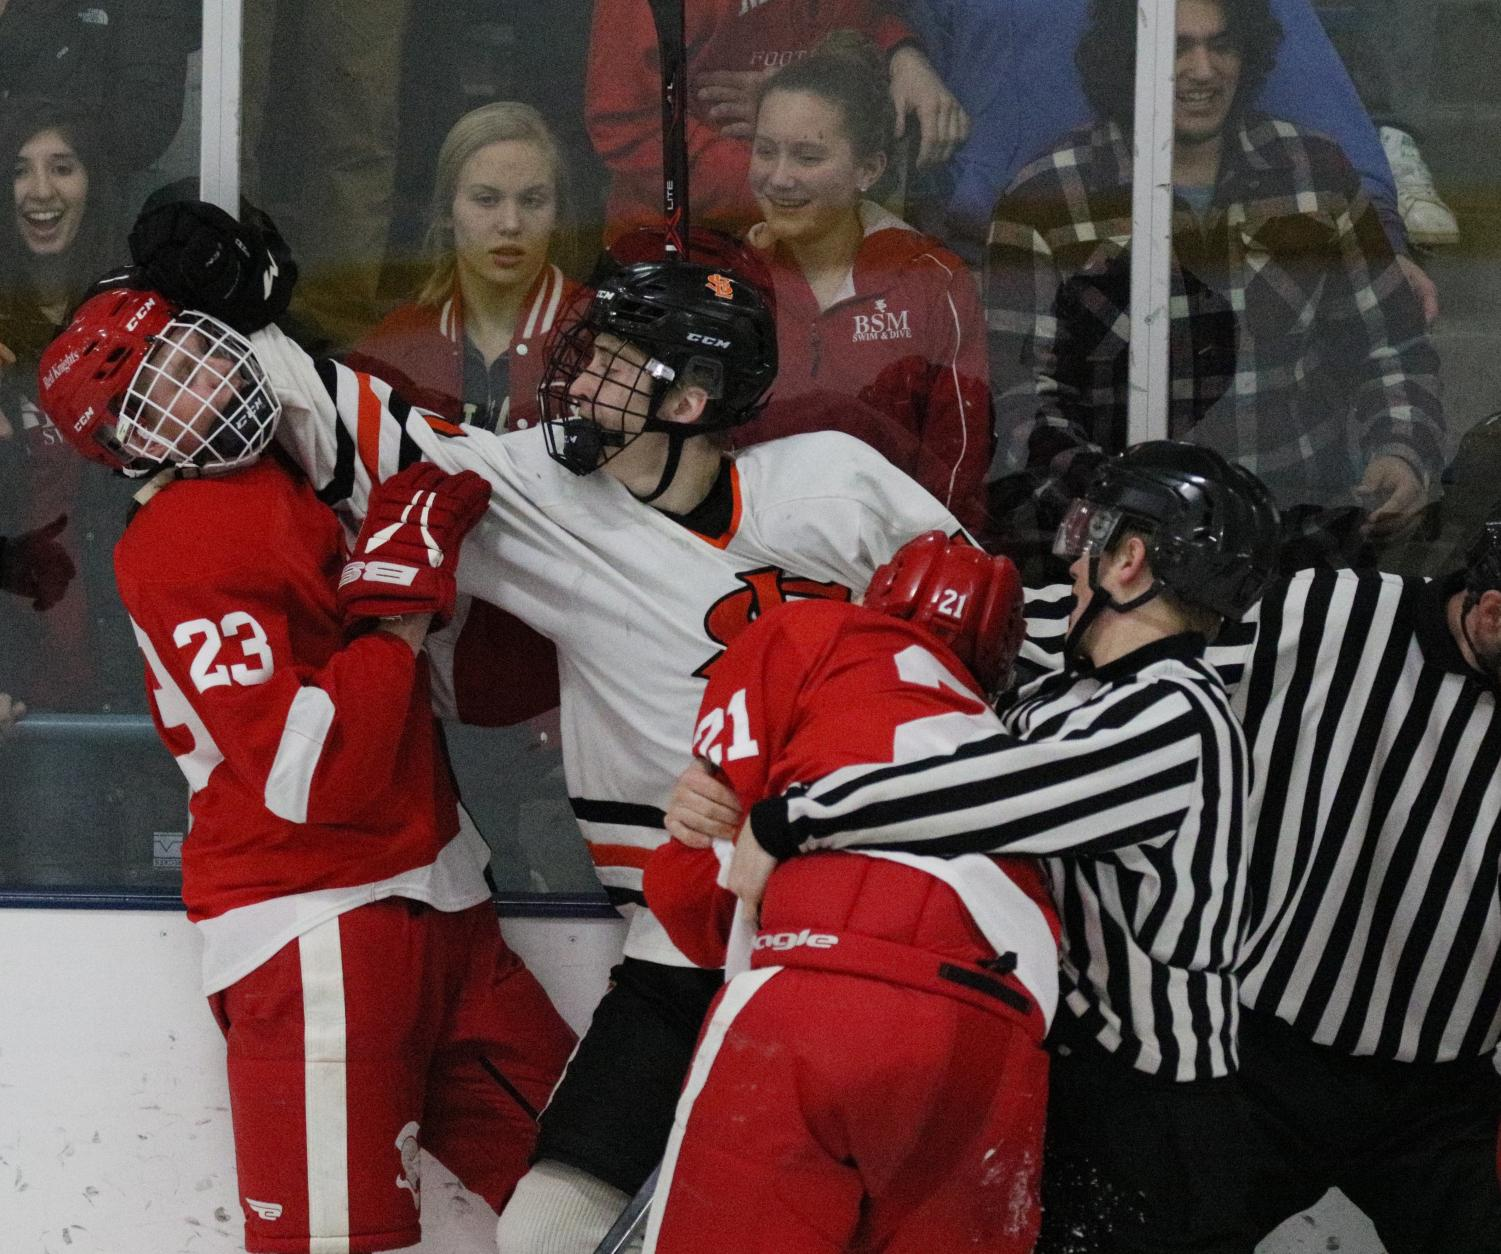 Senior+Connor+Johnson+pushes+Benilde%27s+Brady+Giertsen+while+Benilde%27s+James+Norkosky+is+being+restrained+by+a+referee.+A+fight+broke+out+near+the+end+of+the+game+after+a+late+hit+to+the+head+from+a+Park+player.+